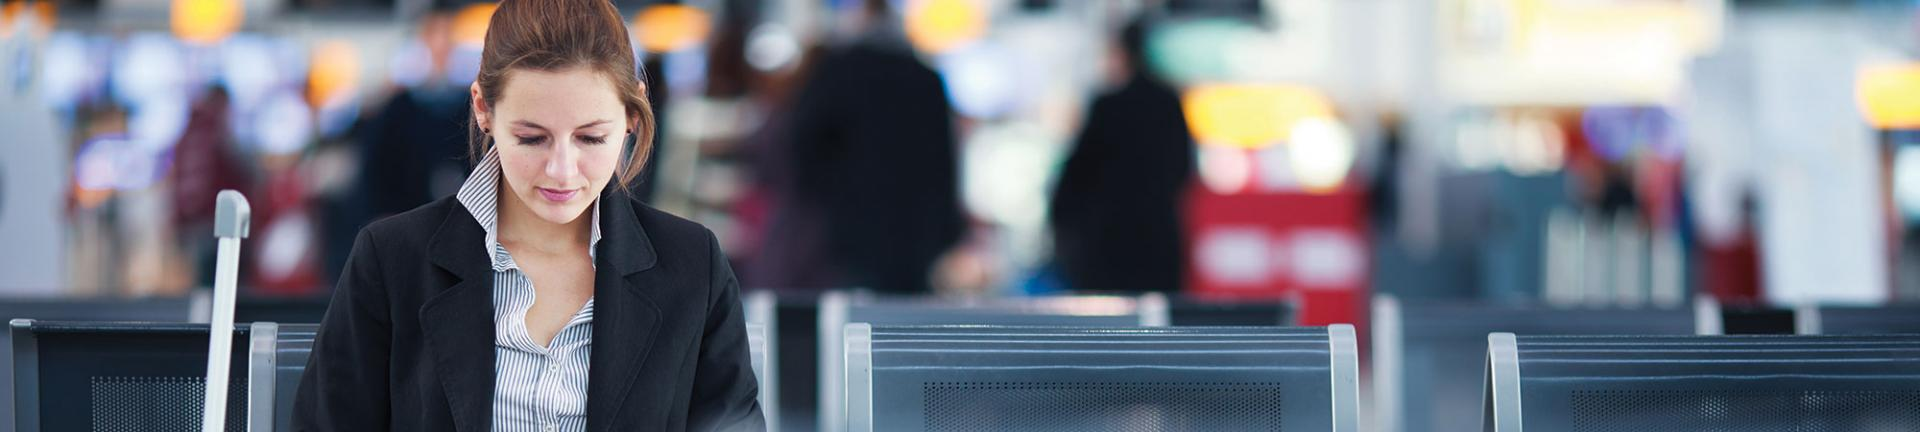 Woman sitting at an airport